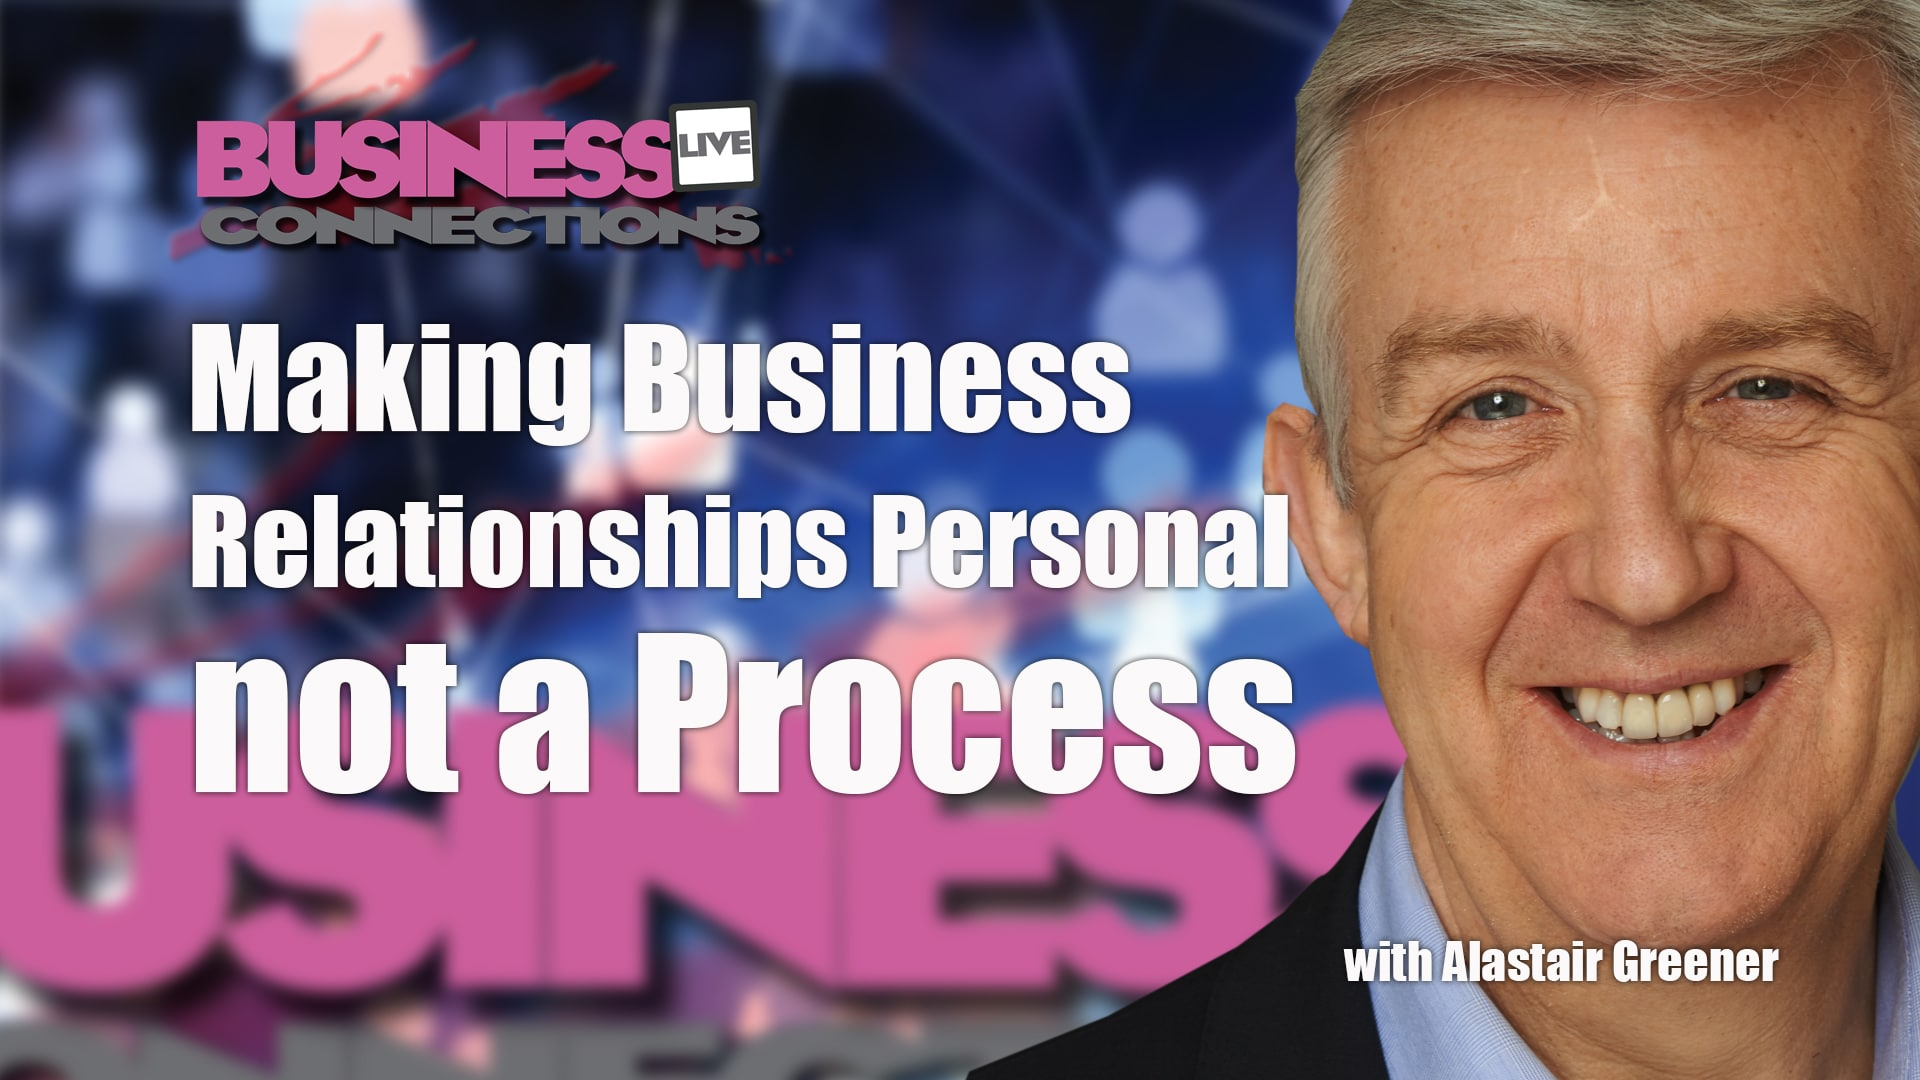 Making Business Relationships Personal not a Process - Alastair Greener